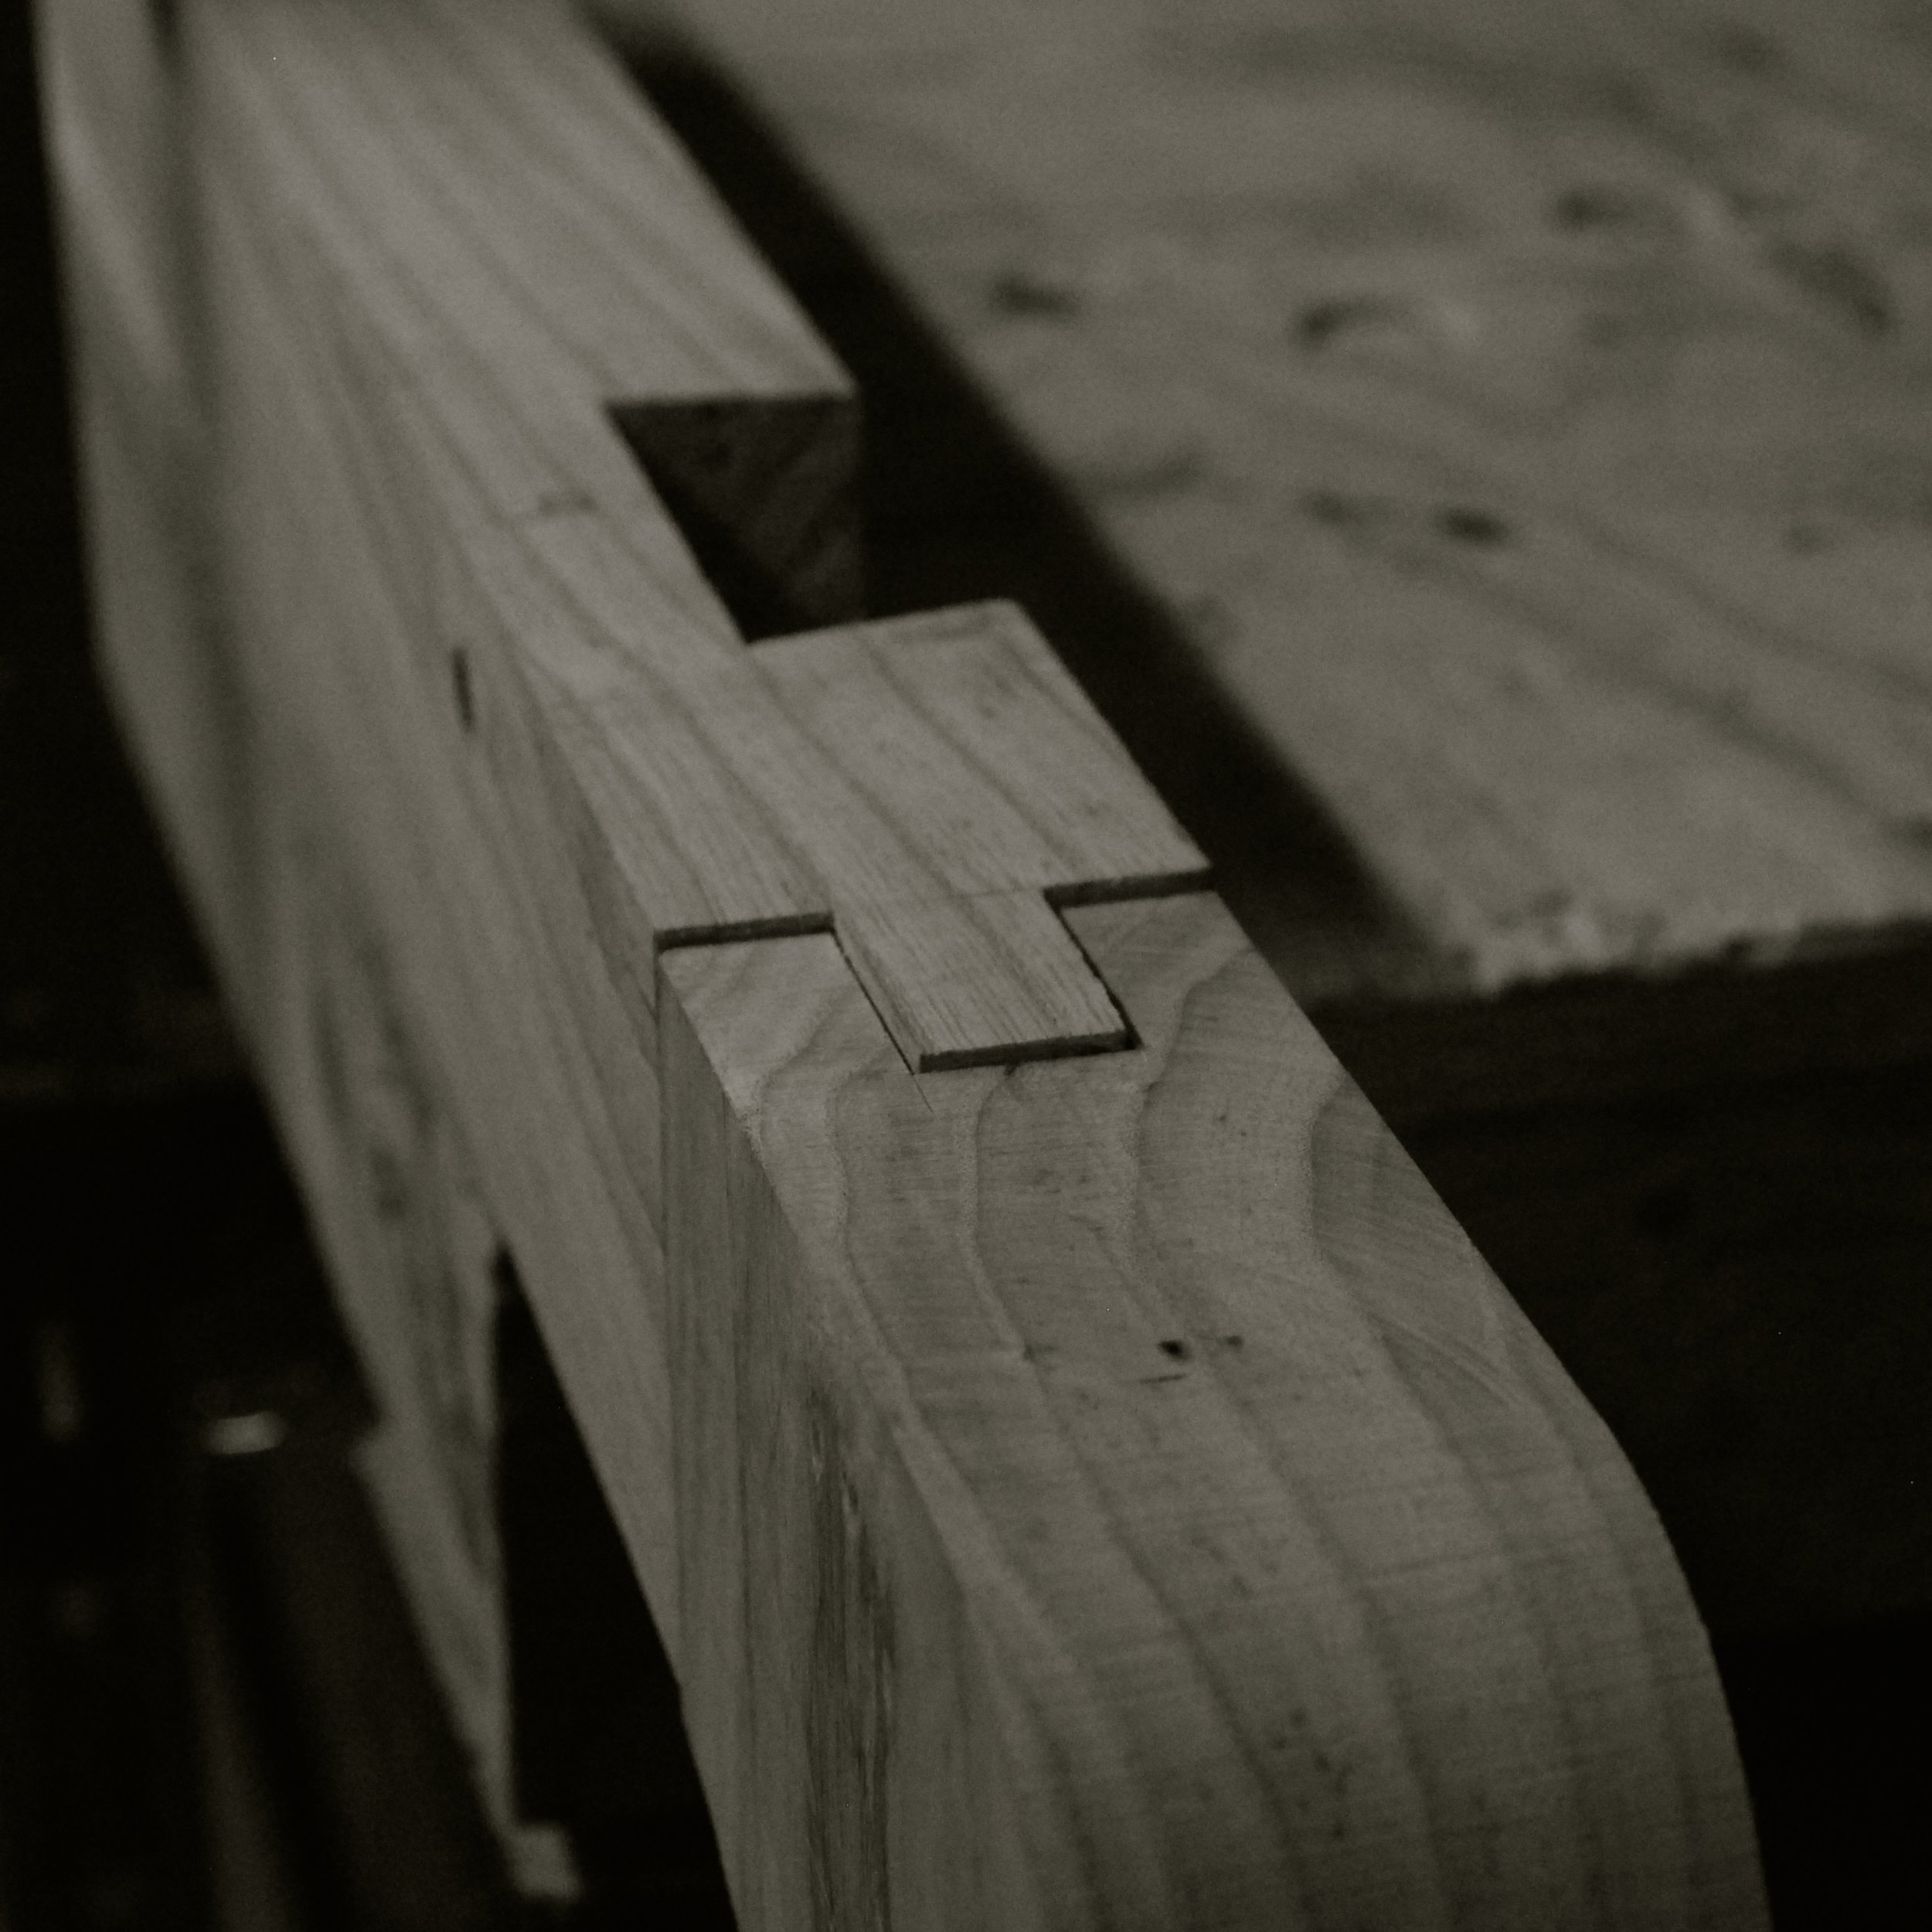 Haunched mortice and tenon joint for a bespoke dining table